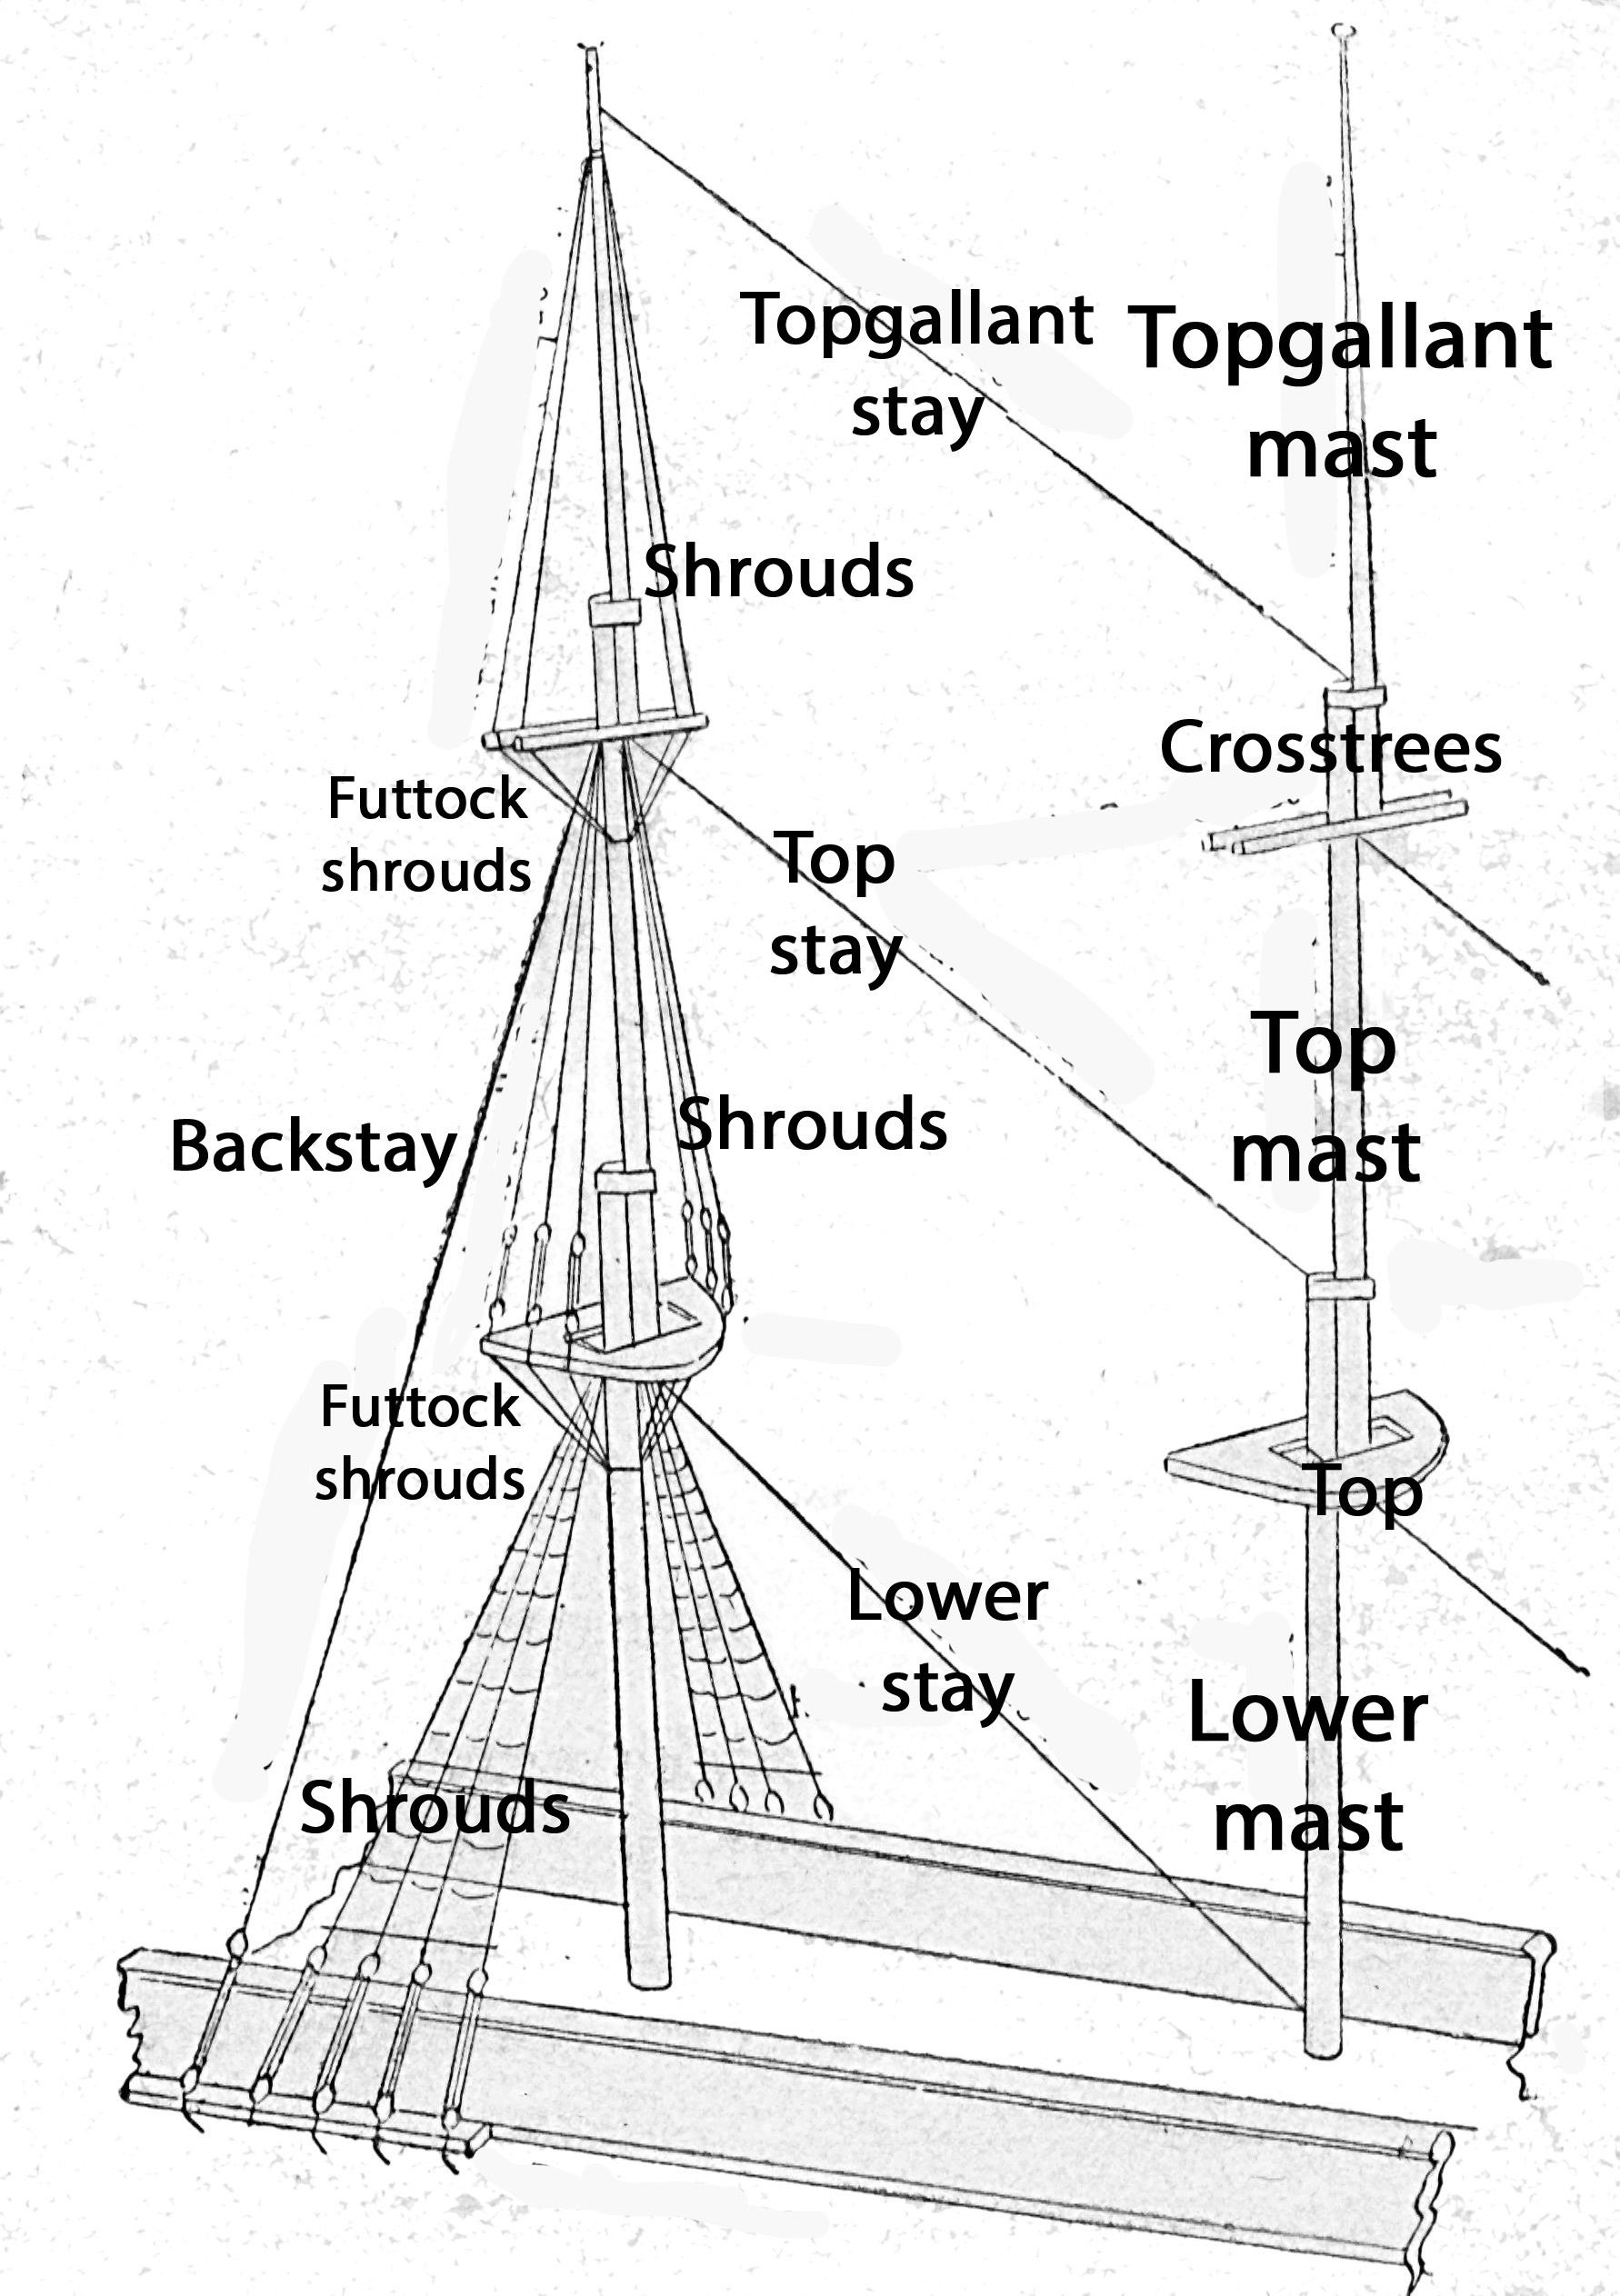 standing rigging diagram bazooka tube wiring wikipedia